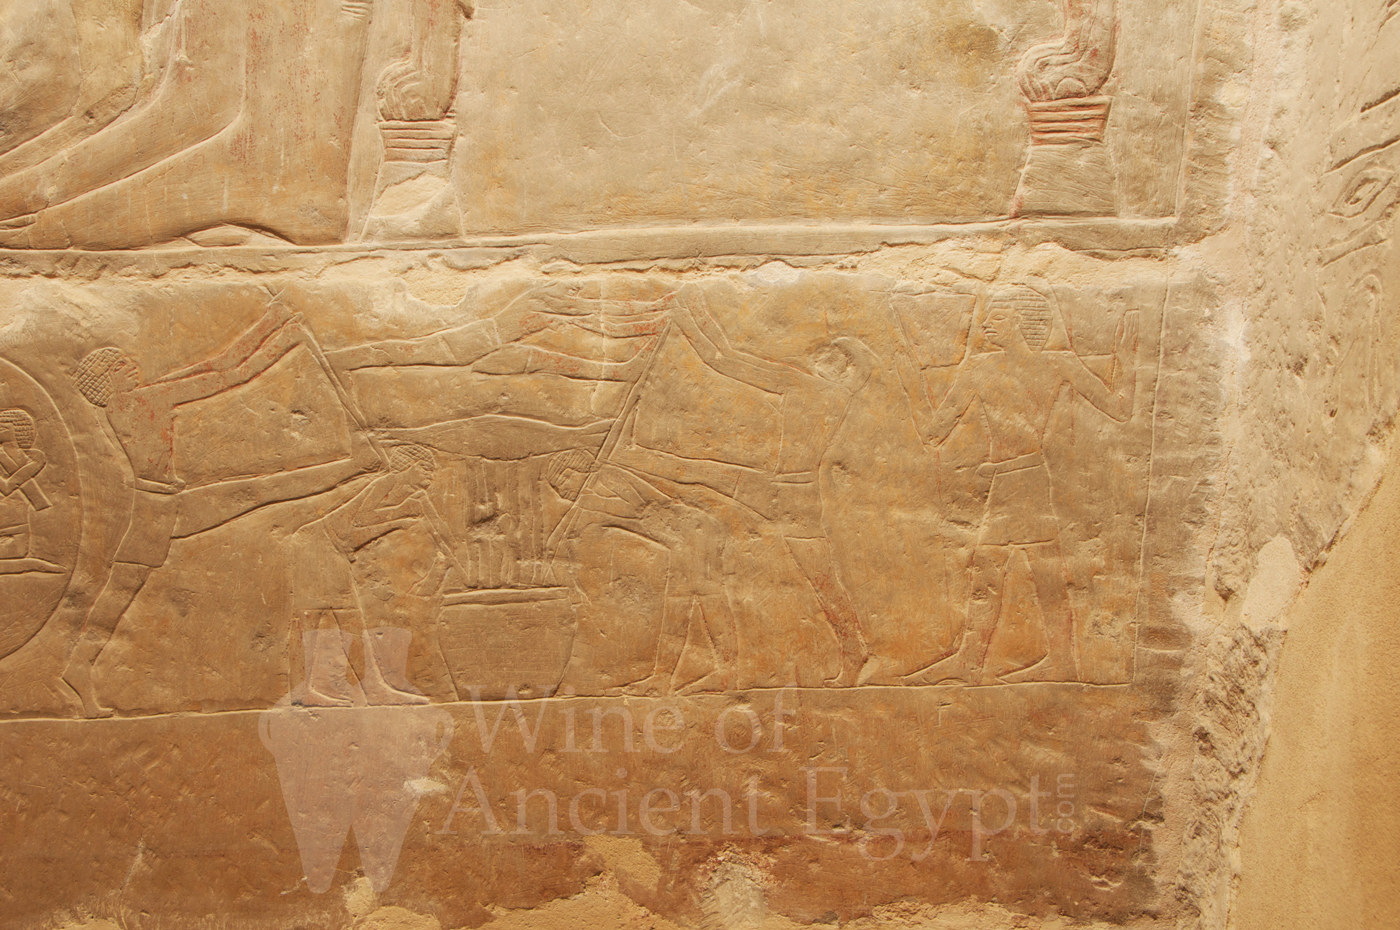 Men working a wine sack-press and a man carrying two baskets of grapes. Mereruka. Saqqara. Dynasty 6